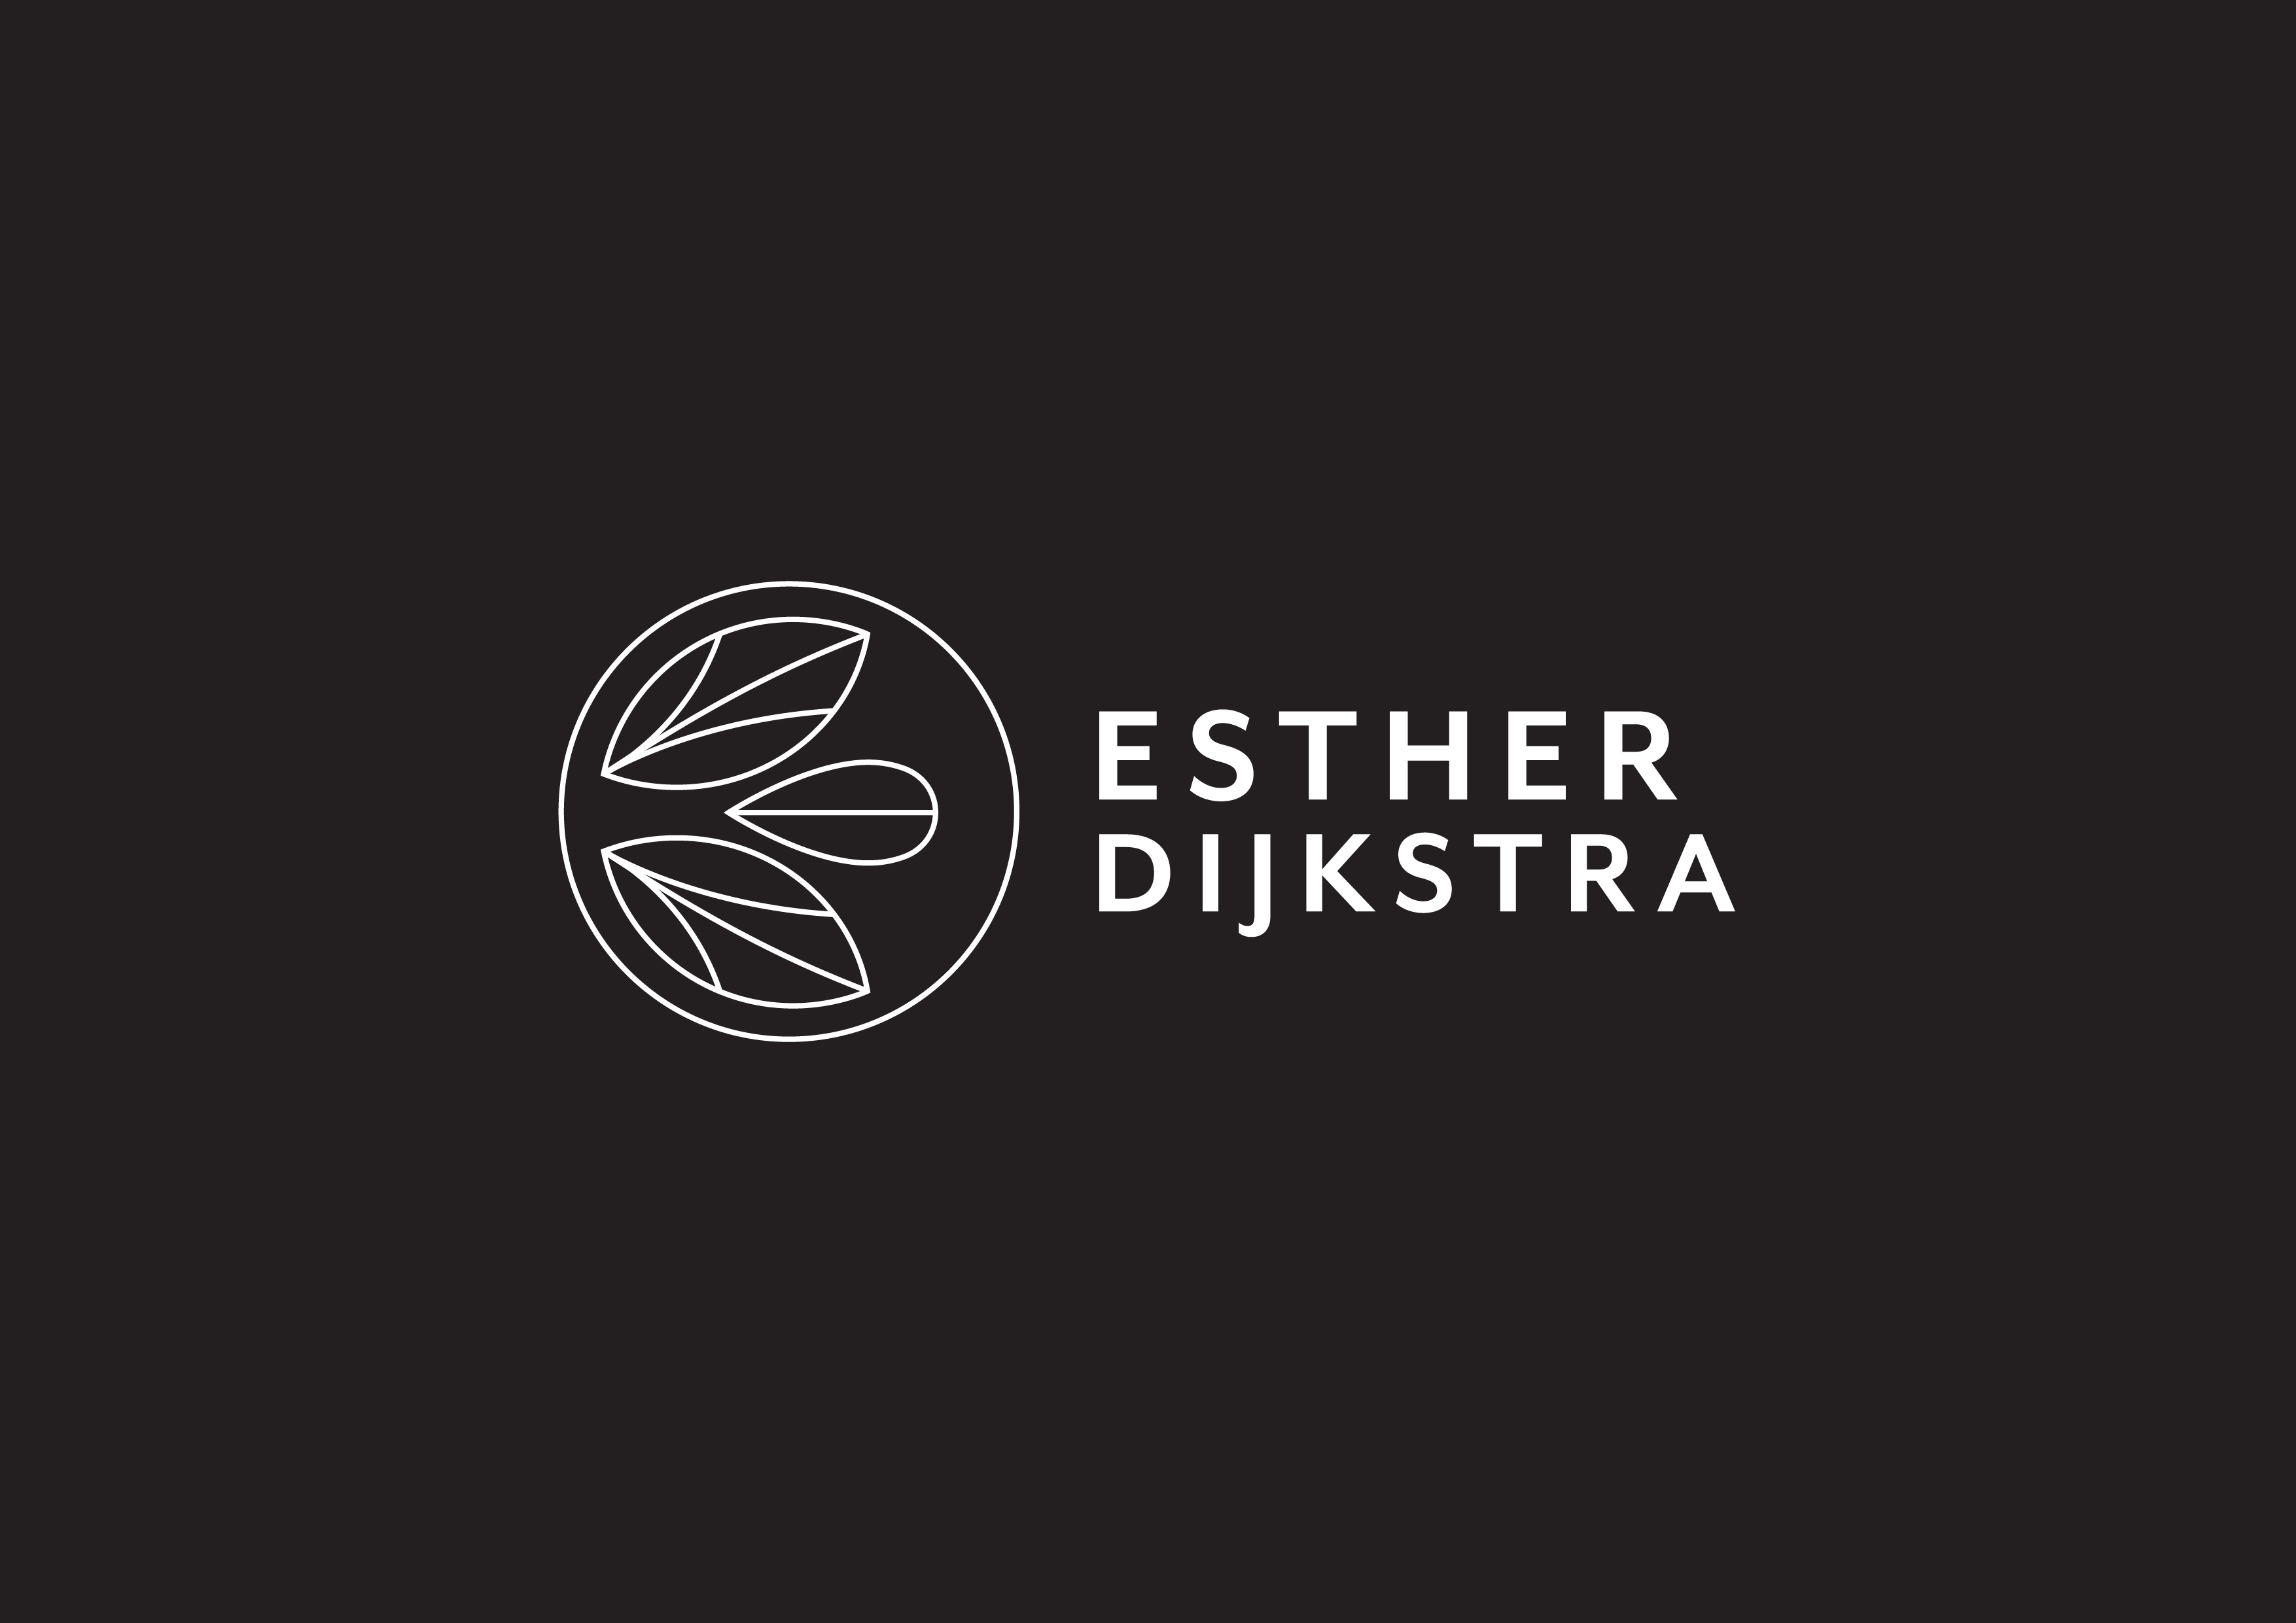 Esther Dijkstra Logo Full Outline White